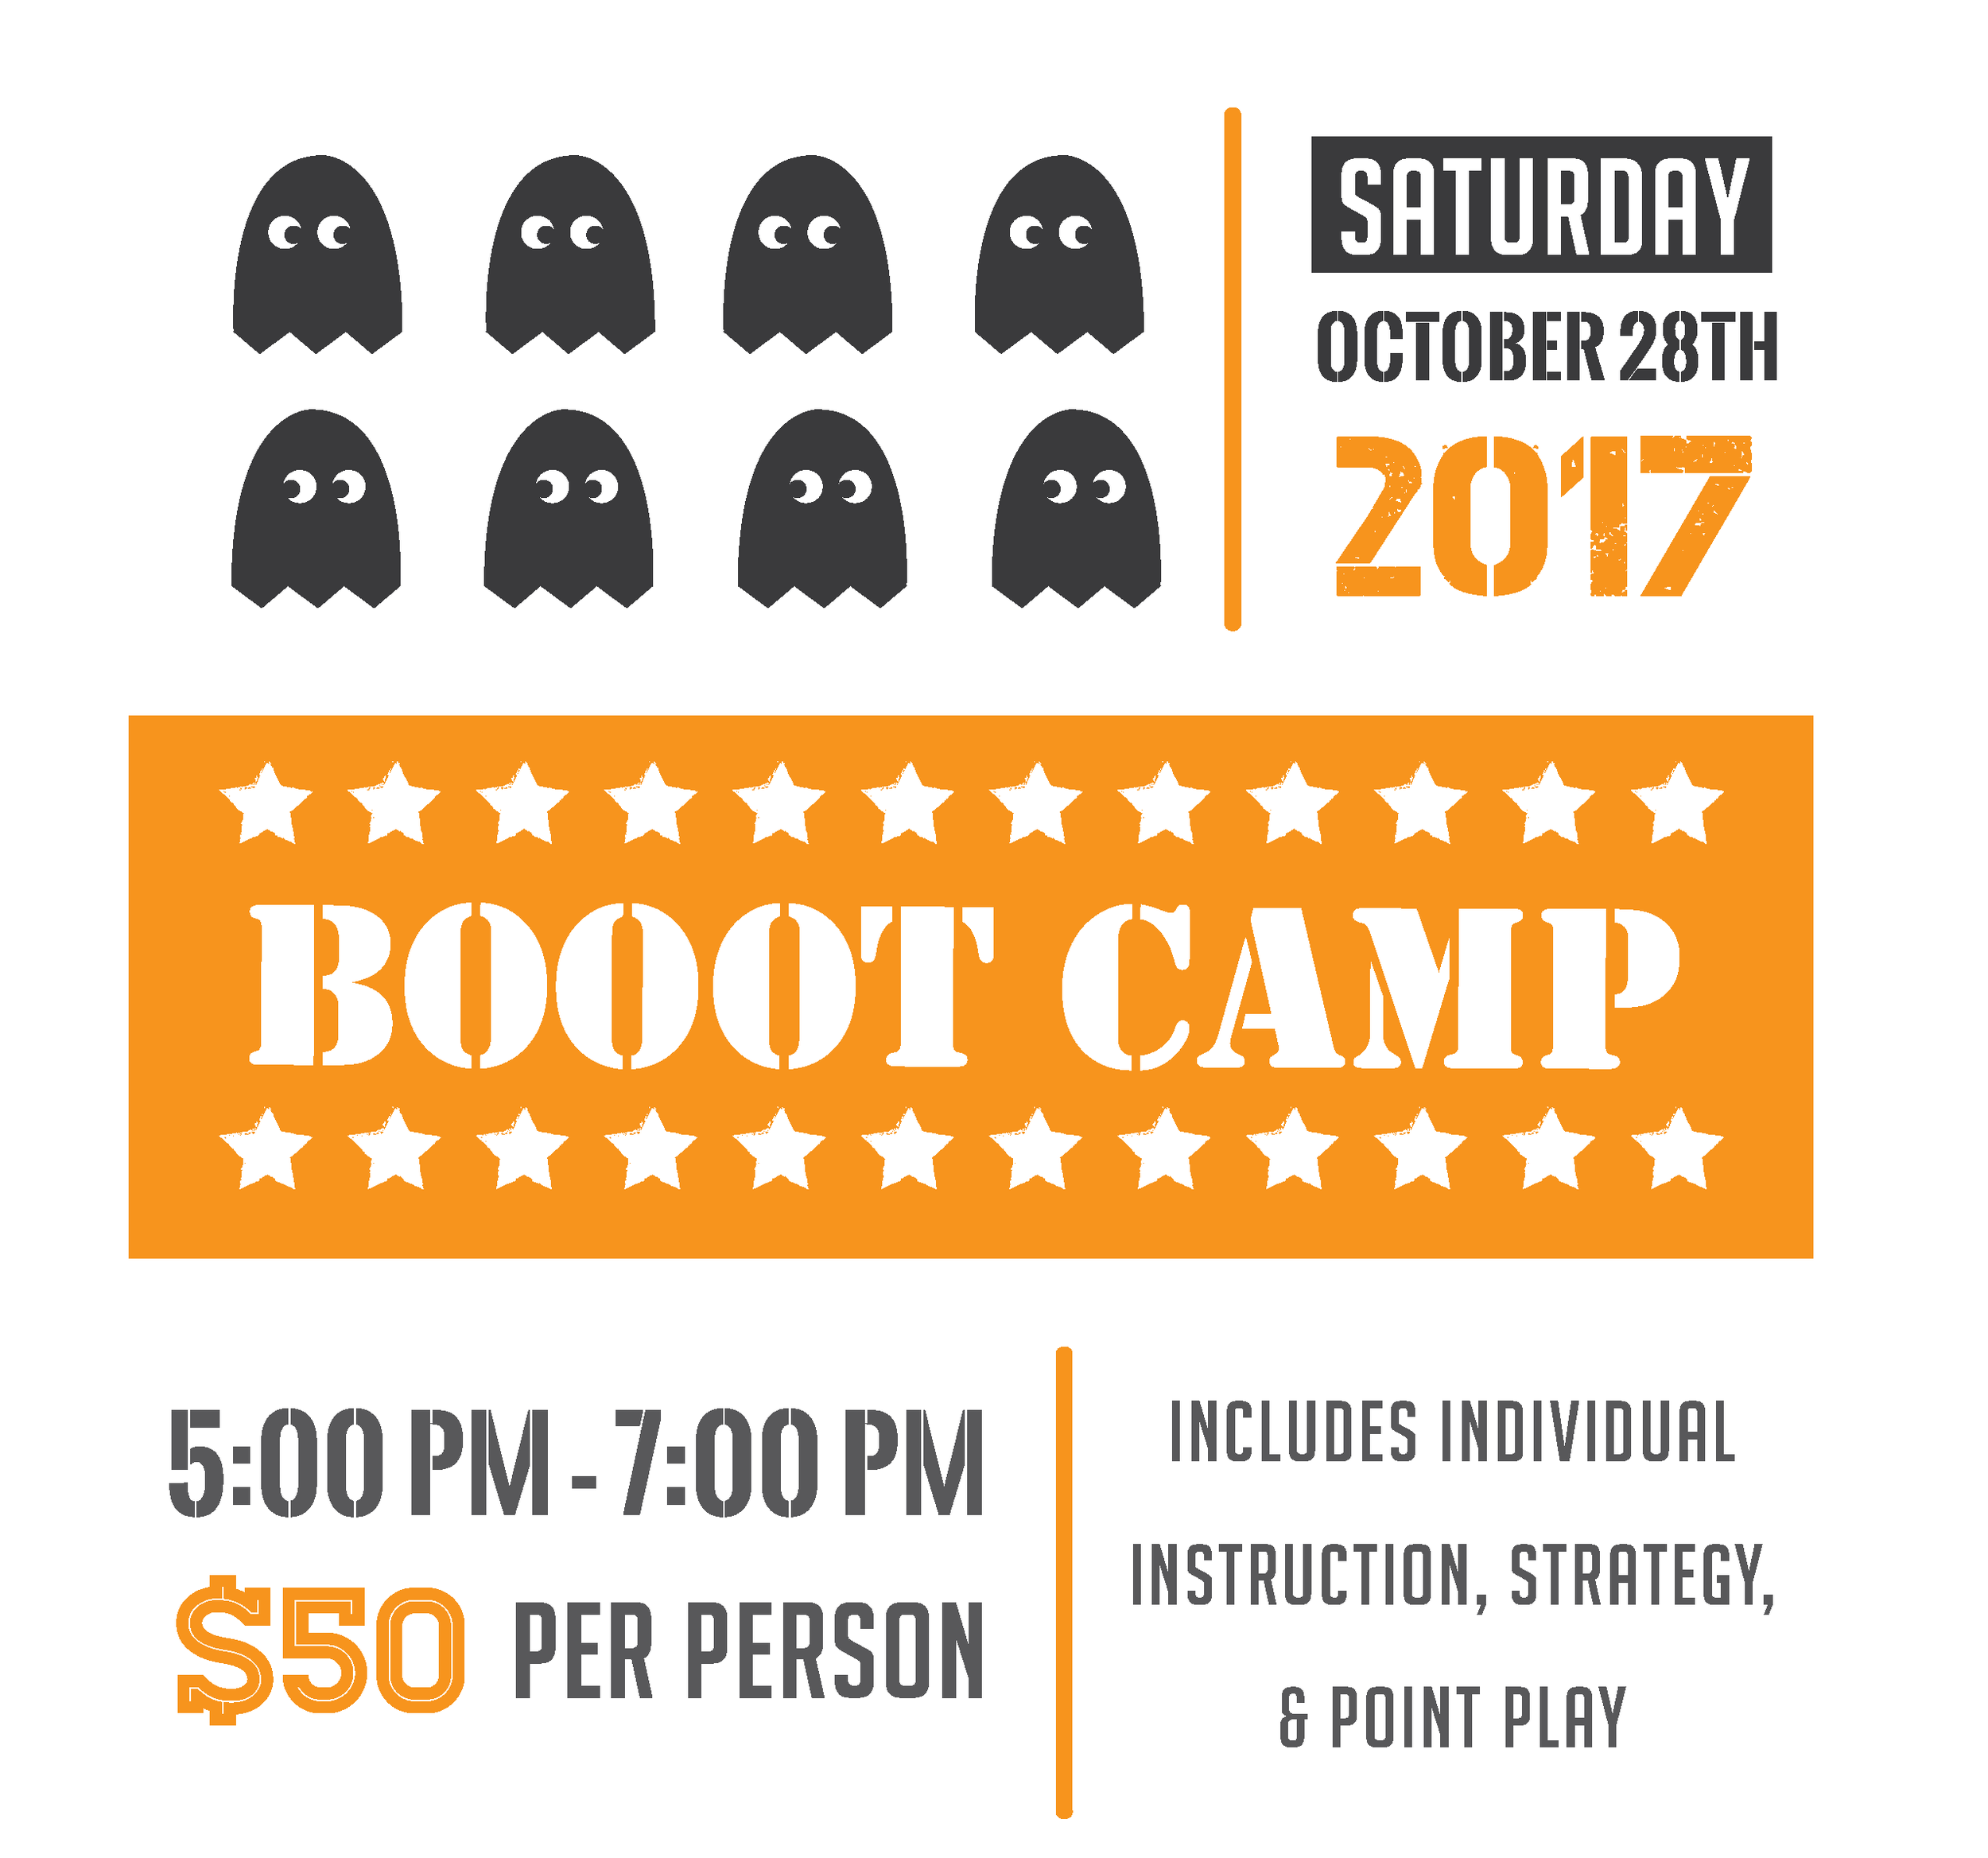 WIRC_Halloween_Bootcamp-02.png